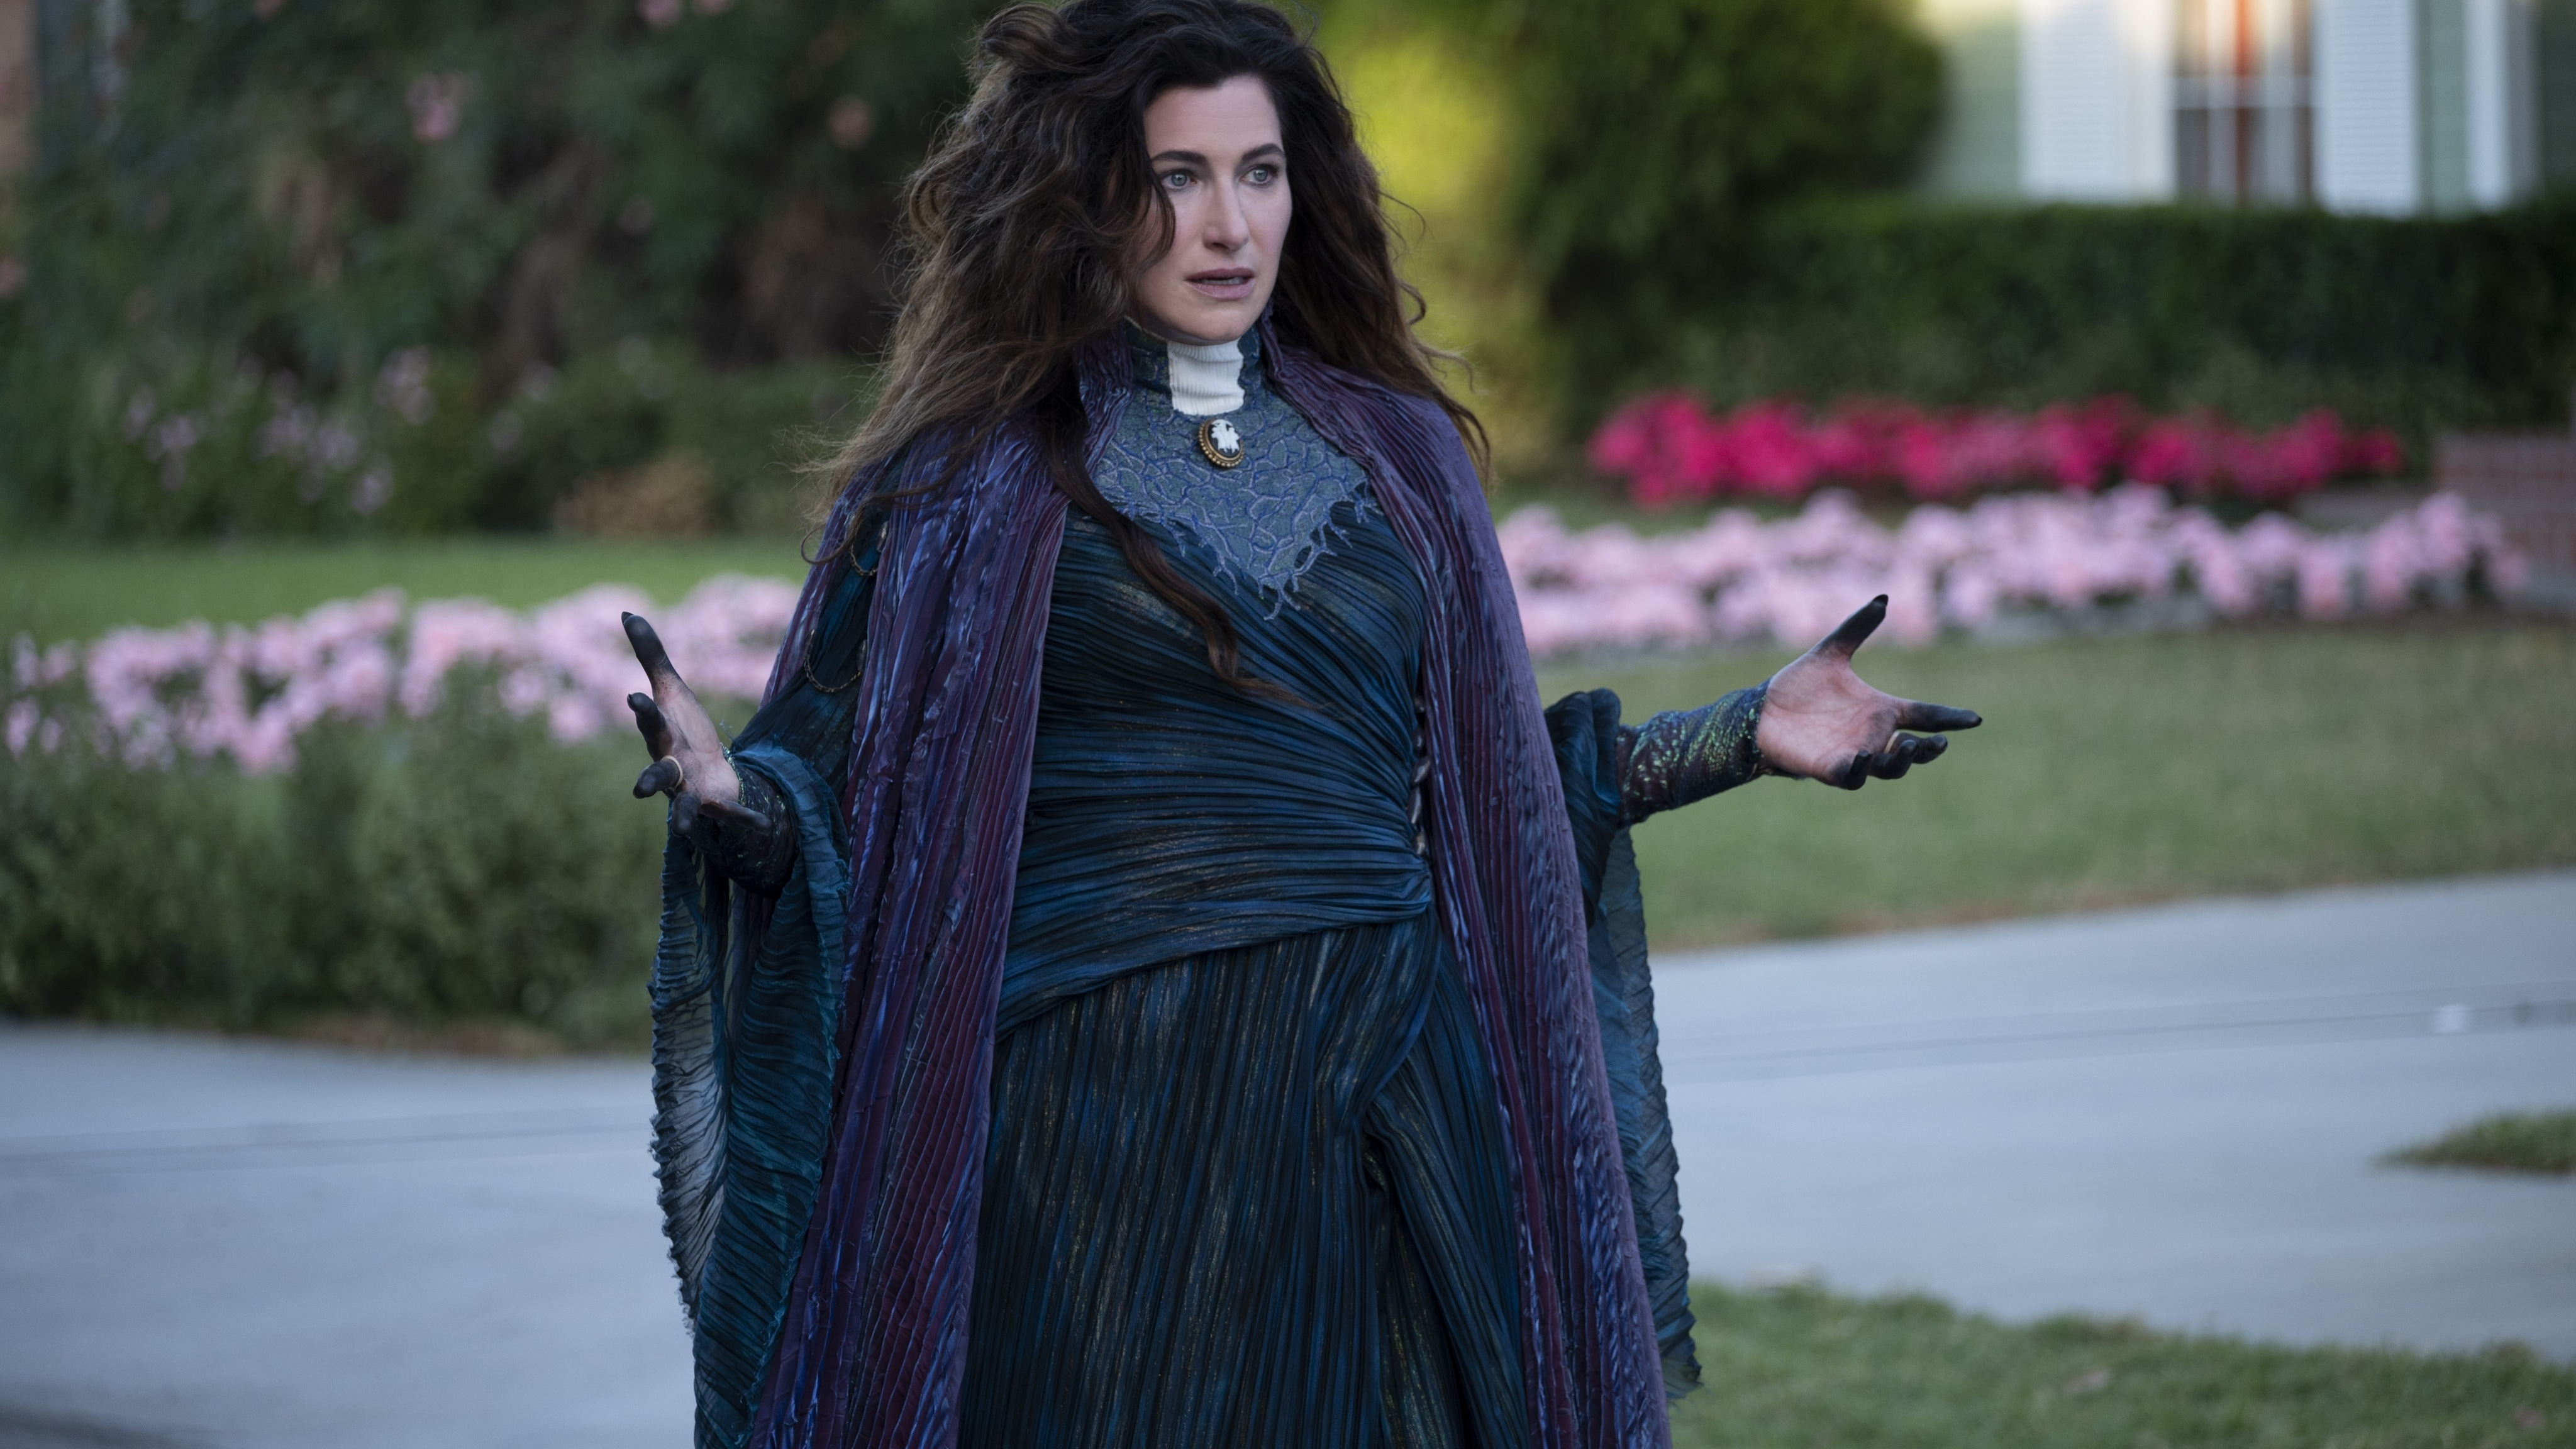 Kathryn Hahn as Agatha Harkness in Marvel Studios' WANDAVISION exclusively on Disney+. Photo by Suzanne Tenner. ©Marvel Studios 2021. All Rights Reserved.